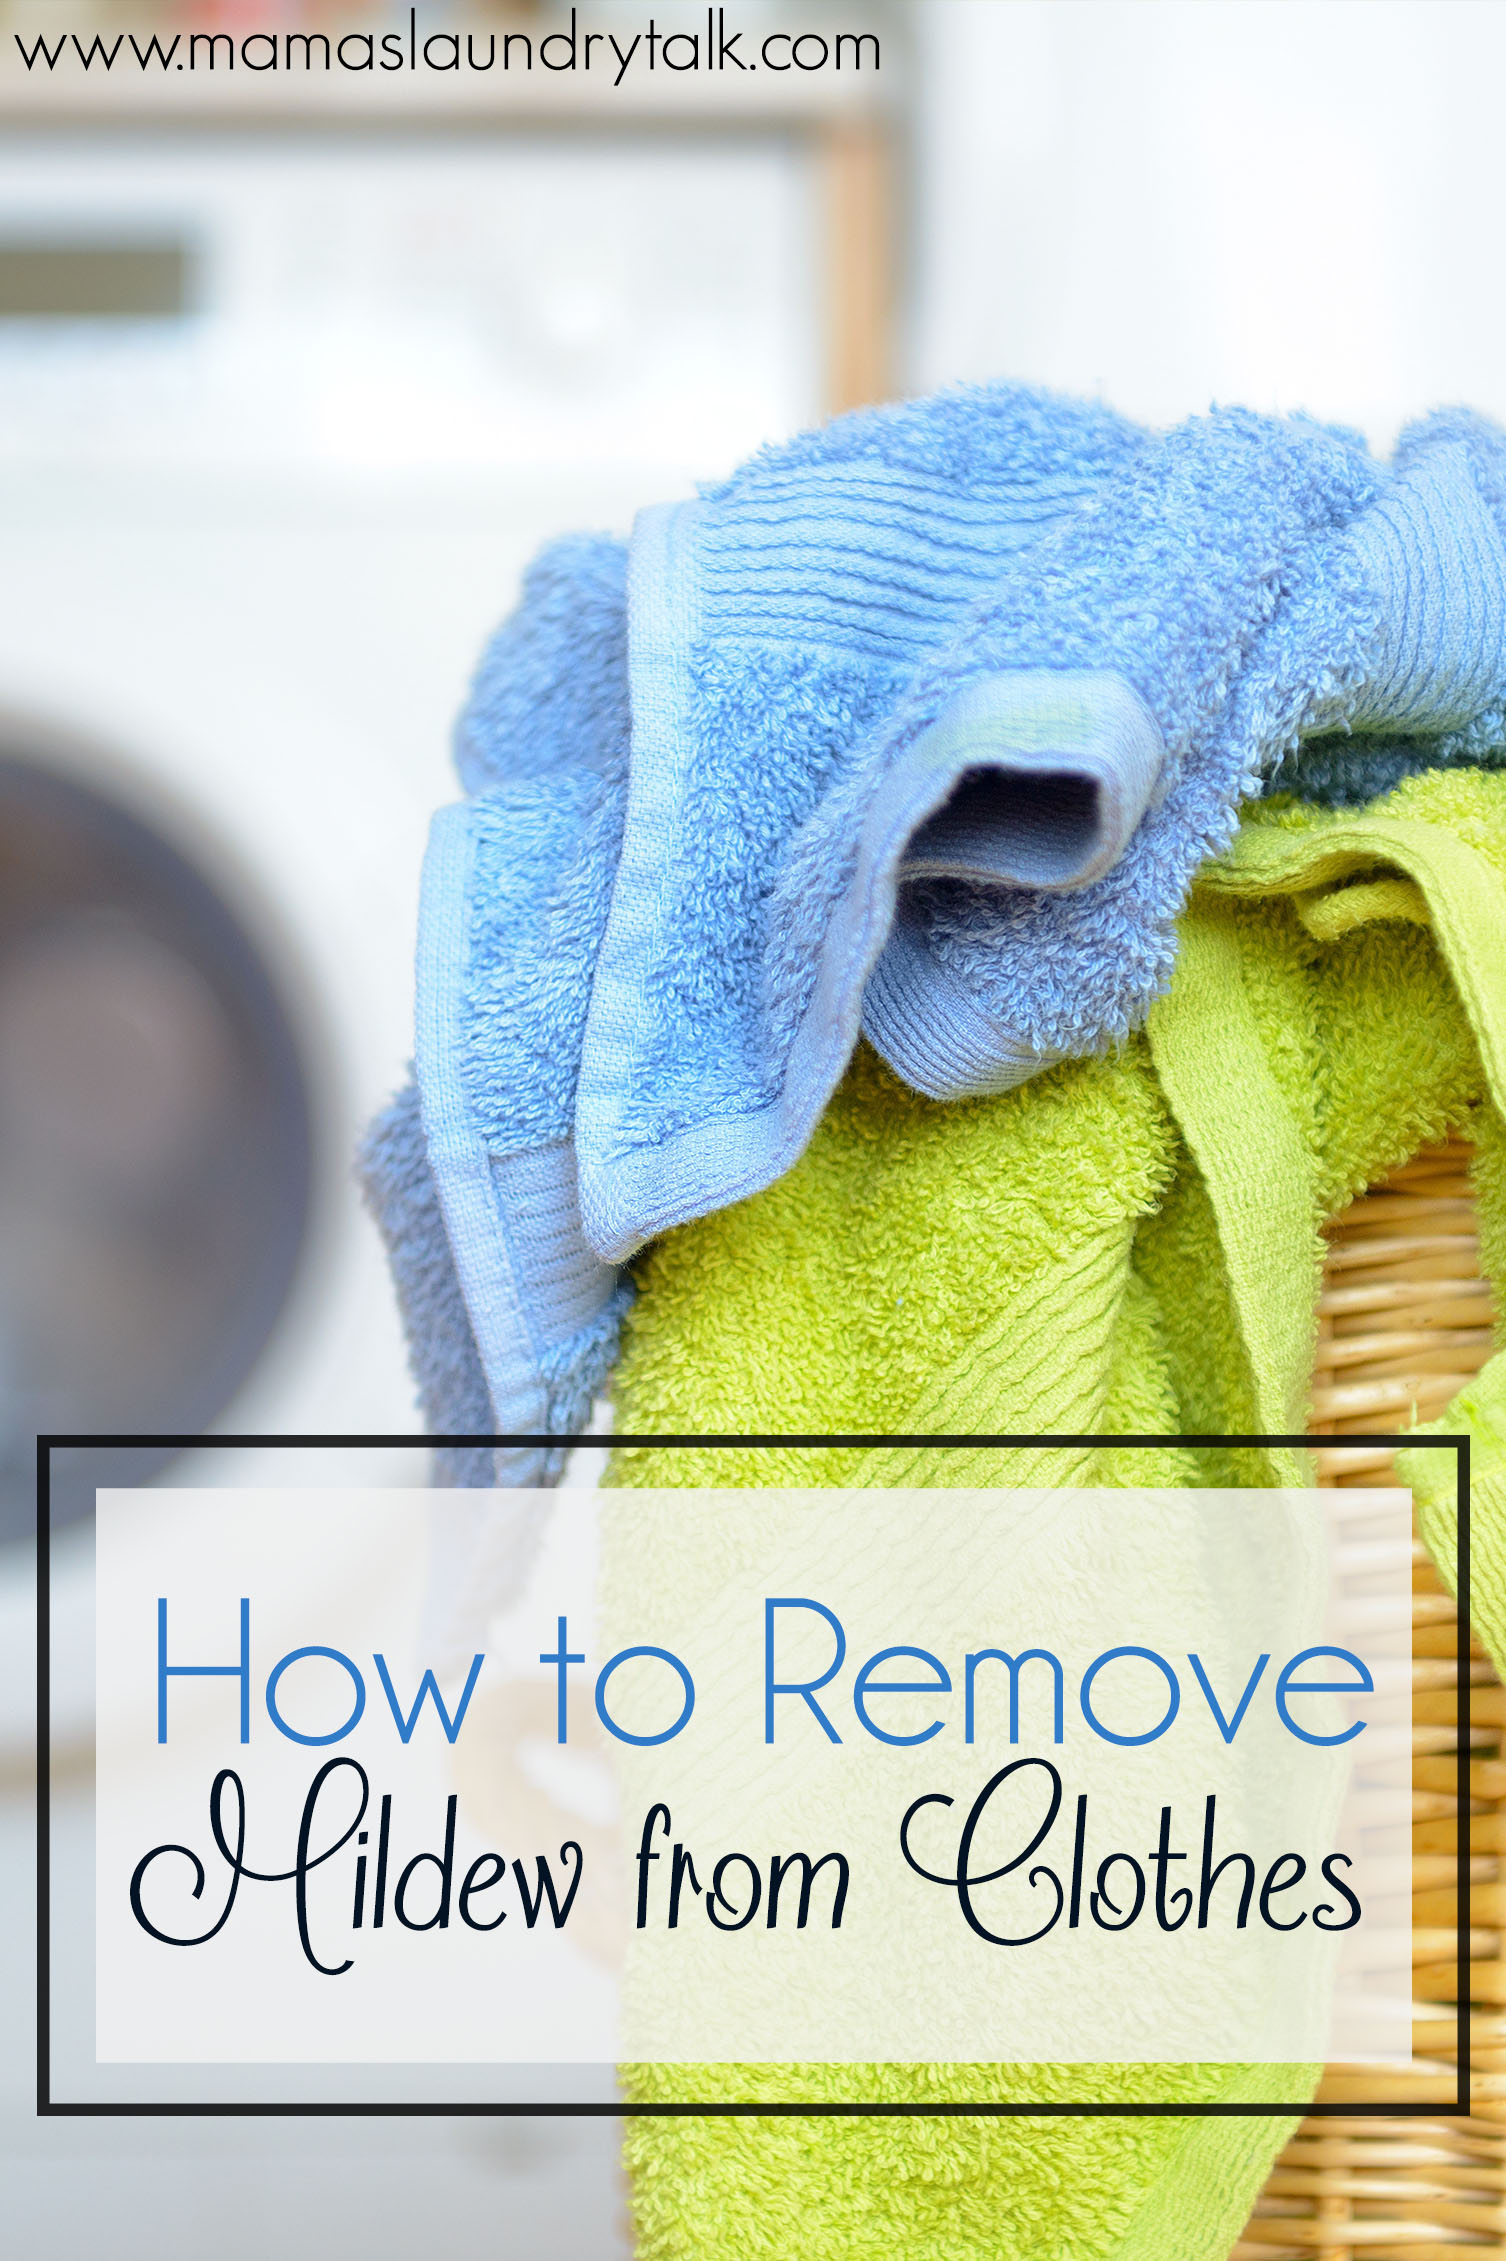 Remove Mold From Fabric